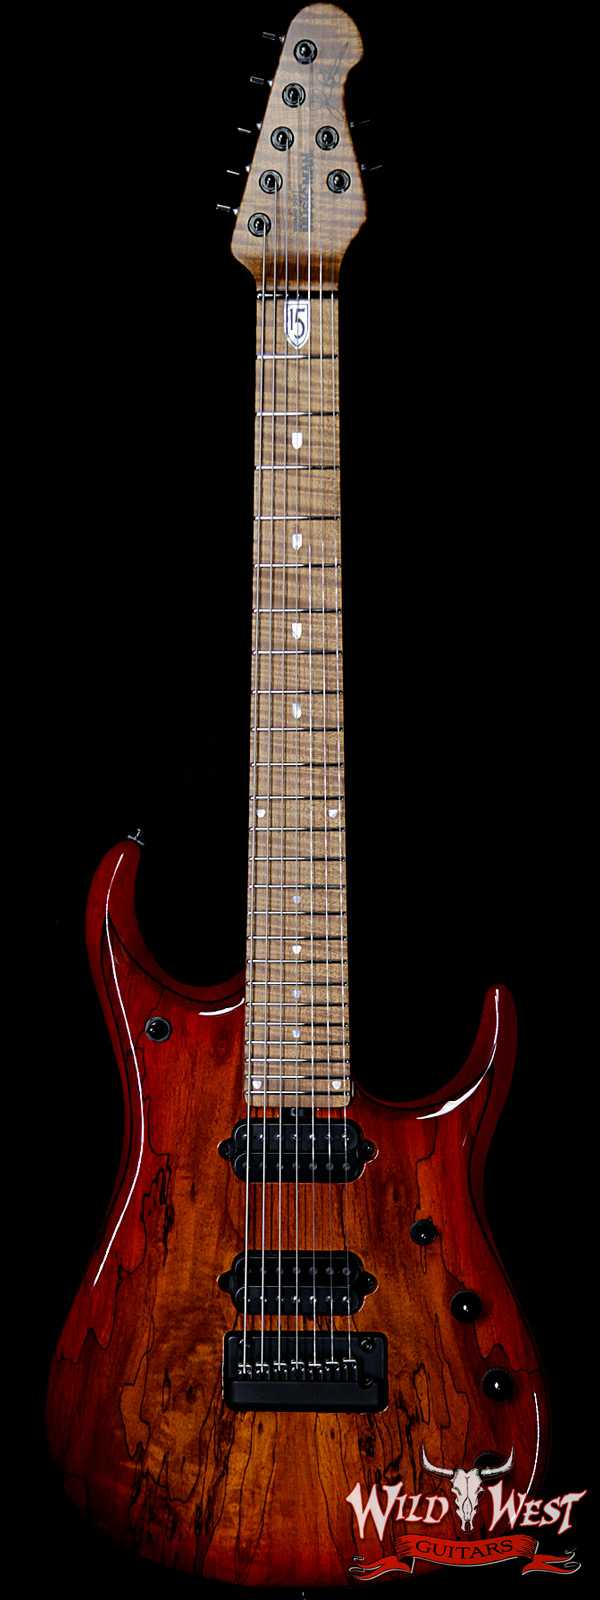 Ernie Ball Music Man BFR JP15 Piezo 7 String Spalted Maple Top Blood Orange Burst #45 of 71